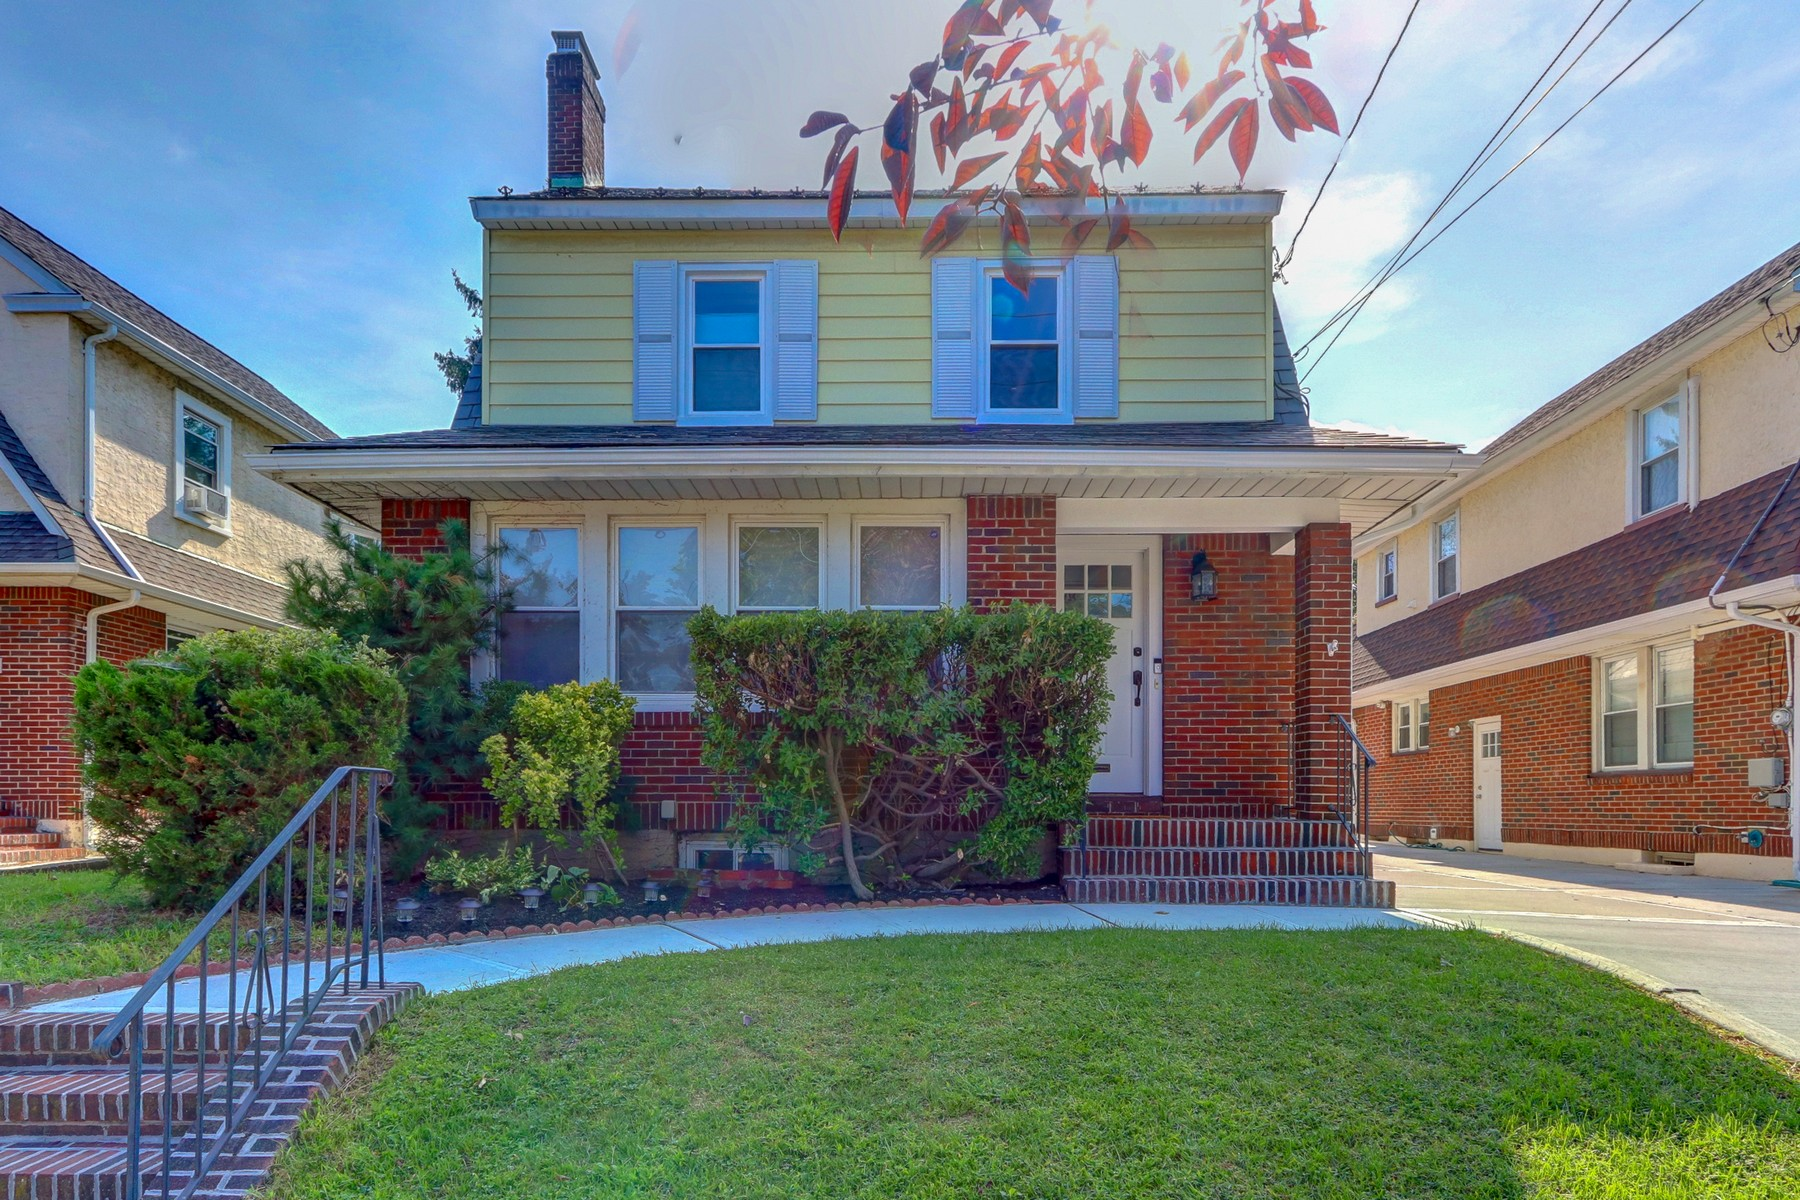 Single Family Homes for Sale at Floral Park 311 Plainfield Ave Floral Park, New York 11001 United States